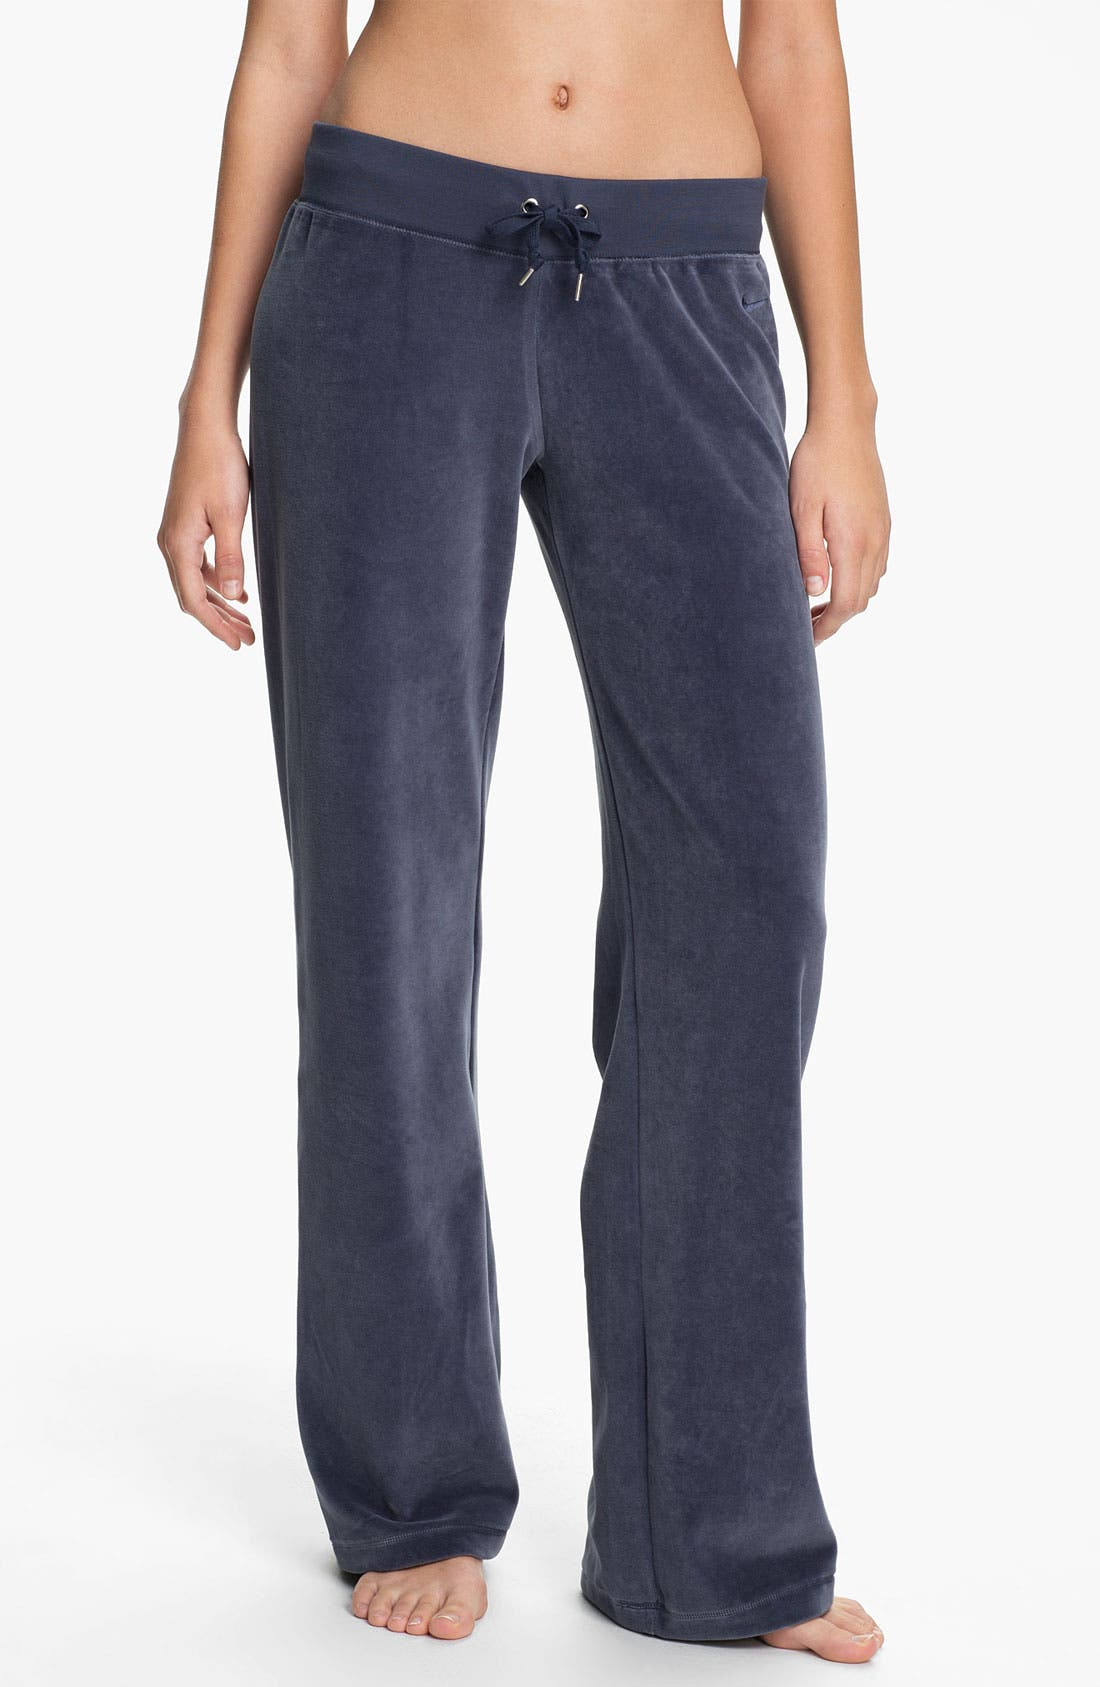 Alternate Image 1 Selected - Nike 'Oh' Velour Pants